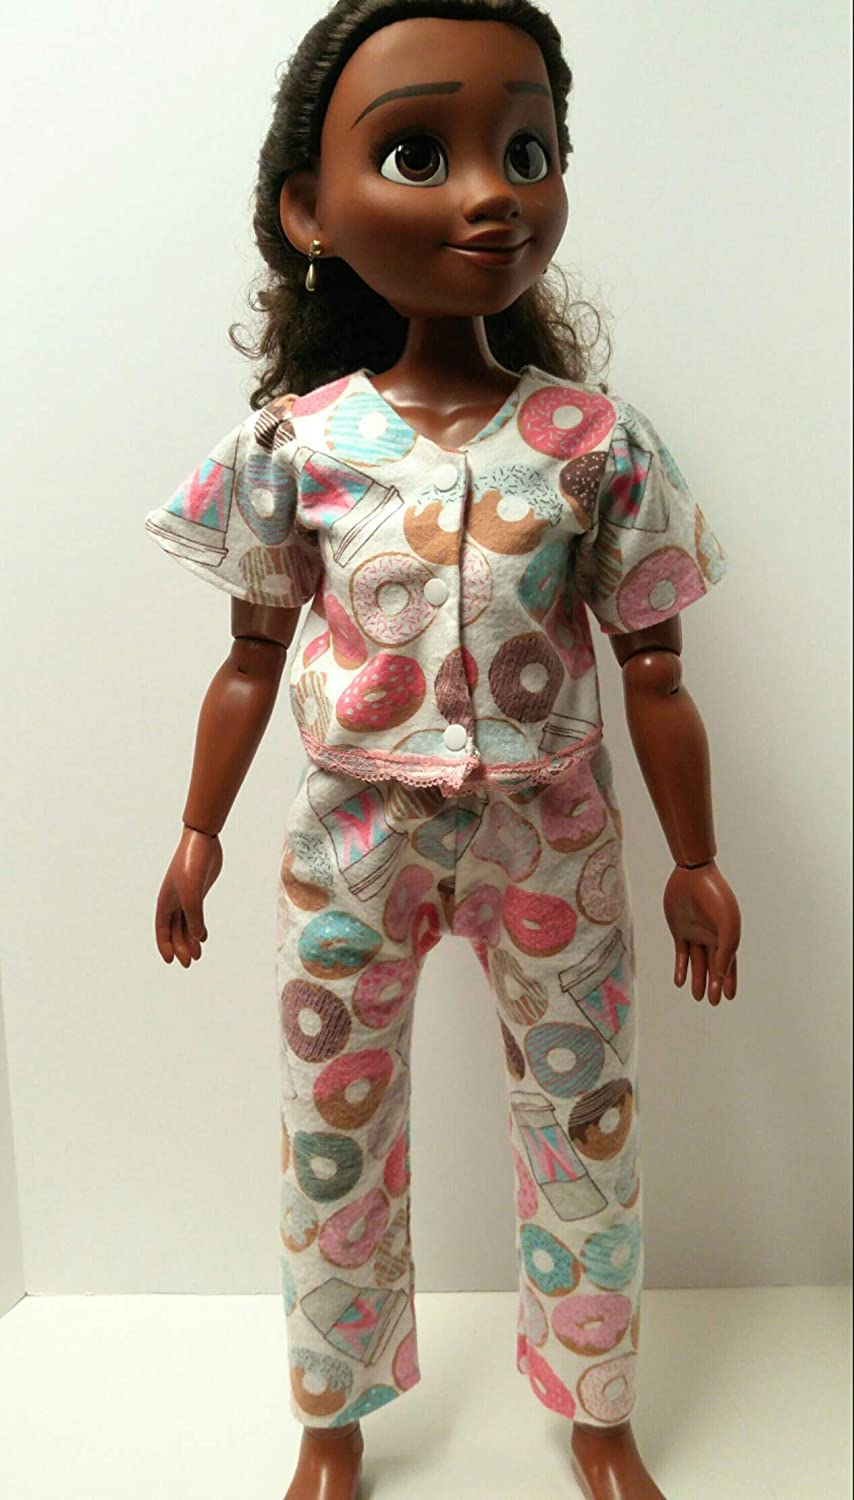 doll outfits Fashionable night wear for dolls Doll clothing Adorable fleece pajama set handmade for 32 inch Moana and similar dolls